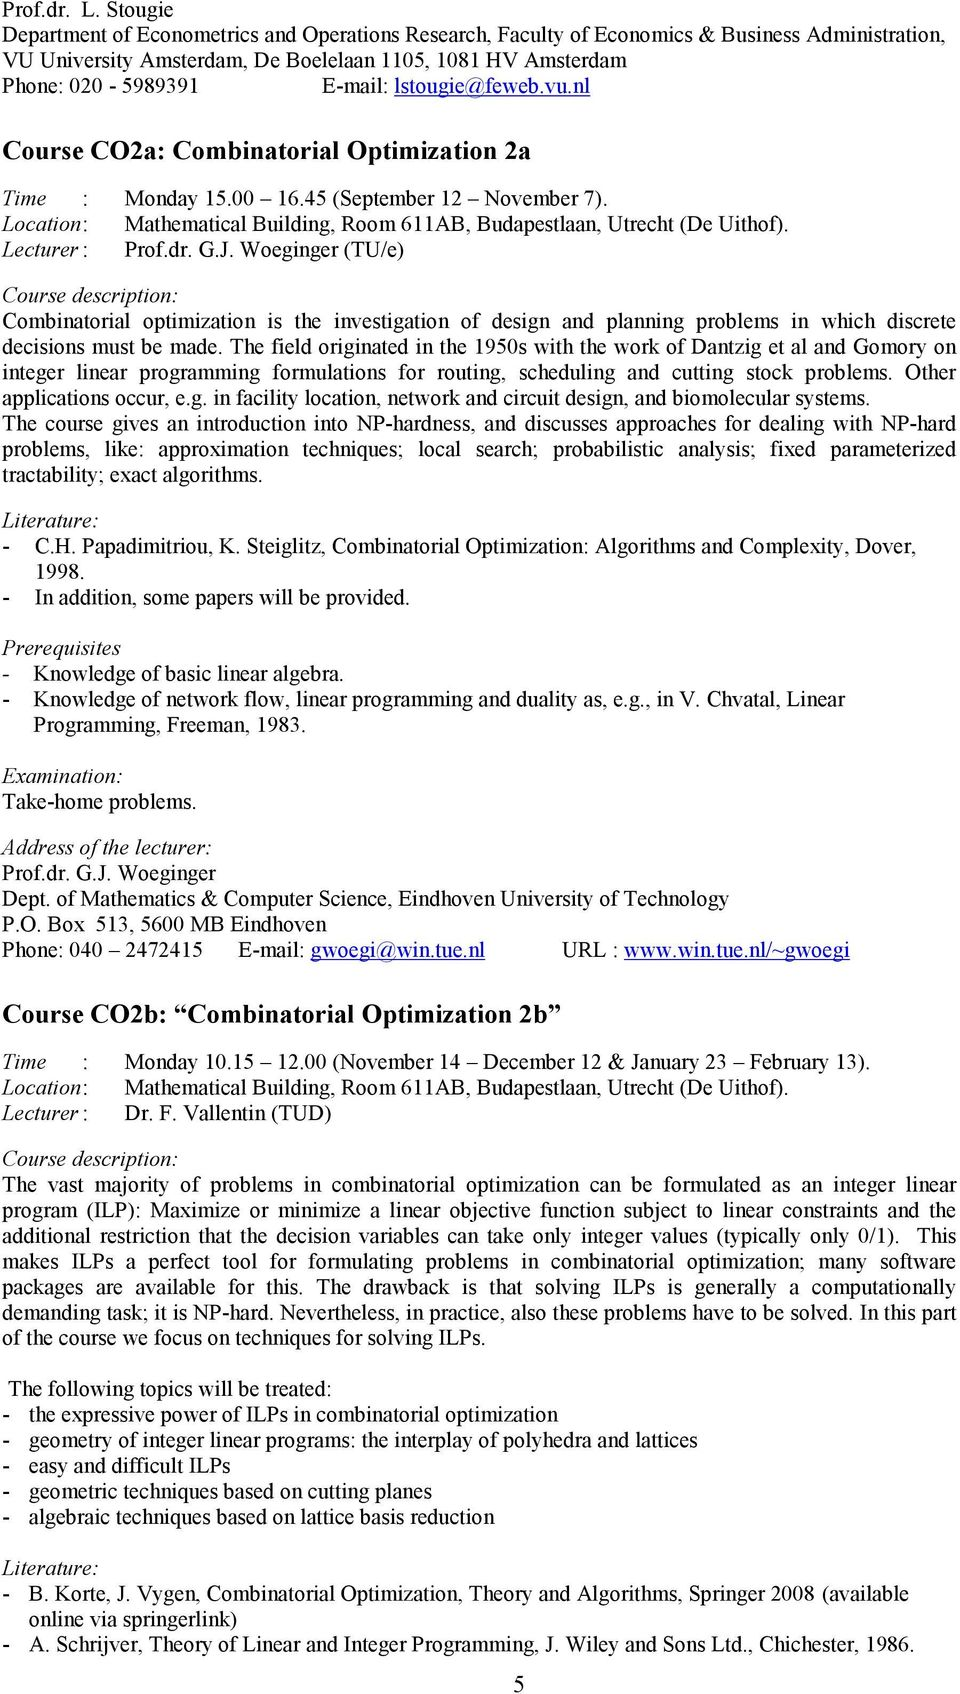 lstougie@feweb.vu.nl Course CO2a: Combinatorial Optimization 2a Time : Monday 15.00 16.45 (September 12 November 7). Location : Mathematical Building, Room 611AB, Budapestlaan, Utrecht (De Uithof).